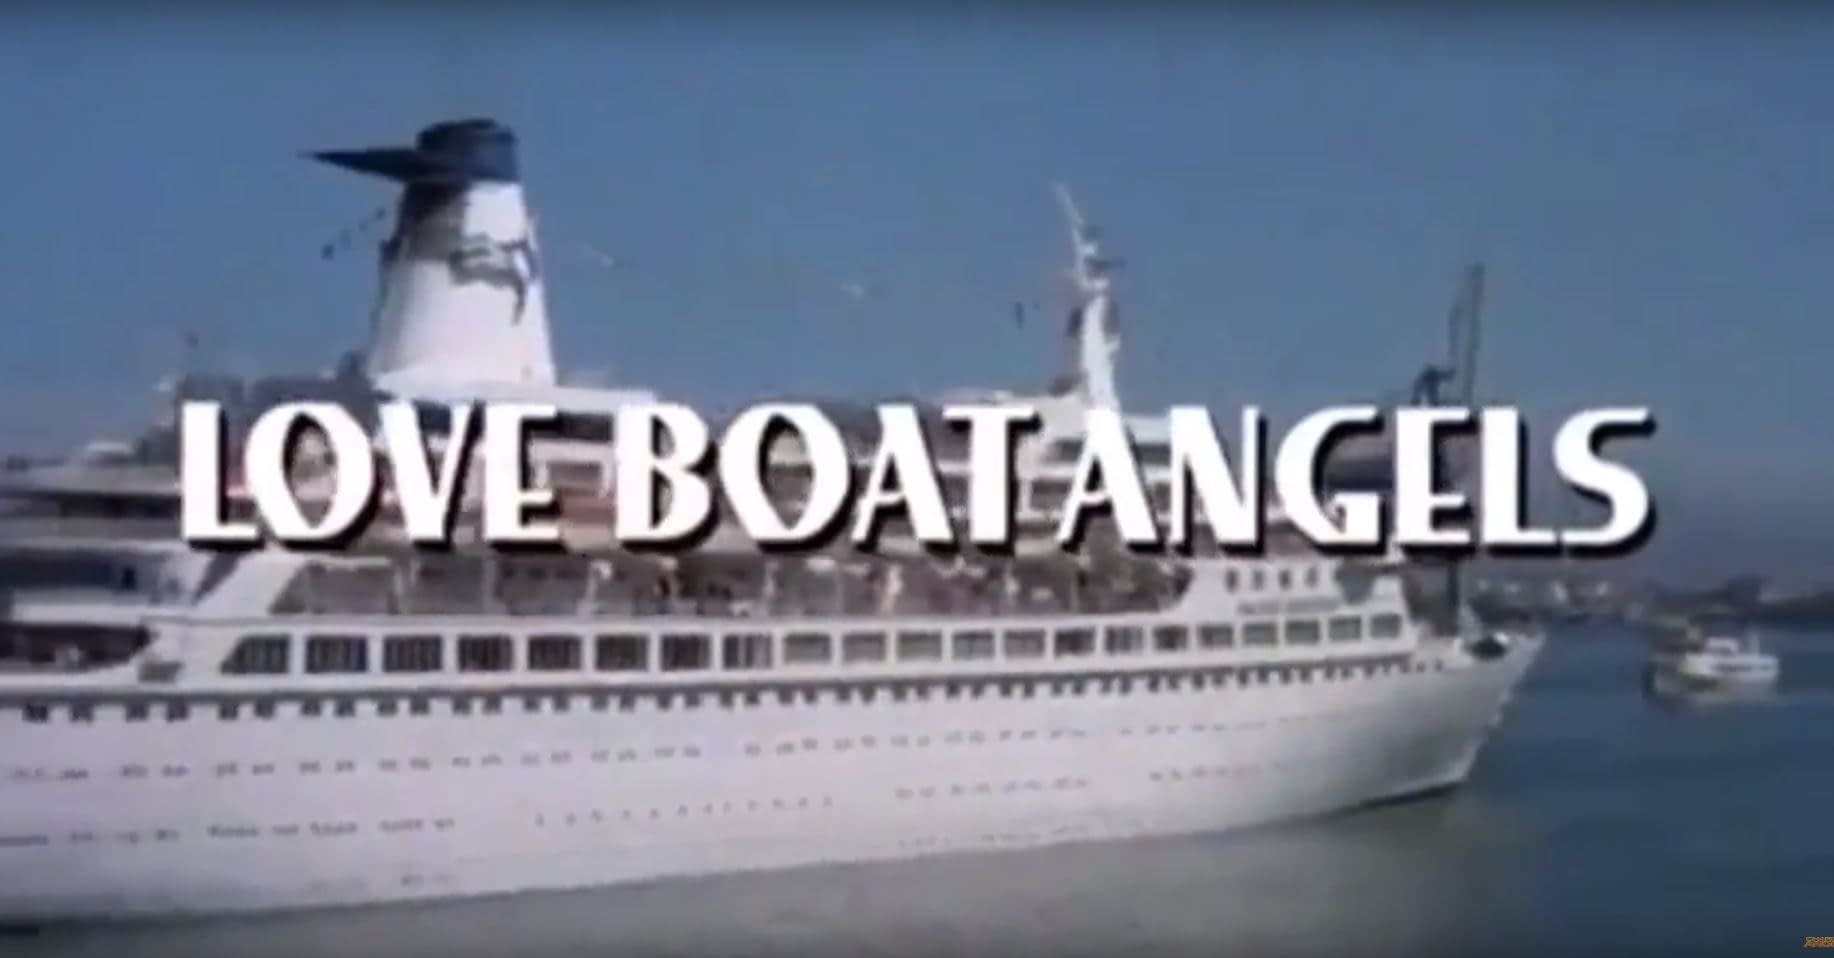 """Charlie's Angels"" Once Became ""Love Boat Angels:"" the Greatest Turkey to Ever Set Sail"